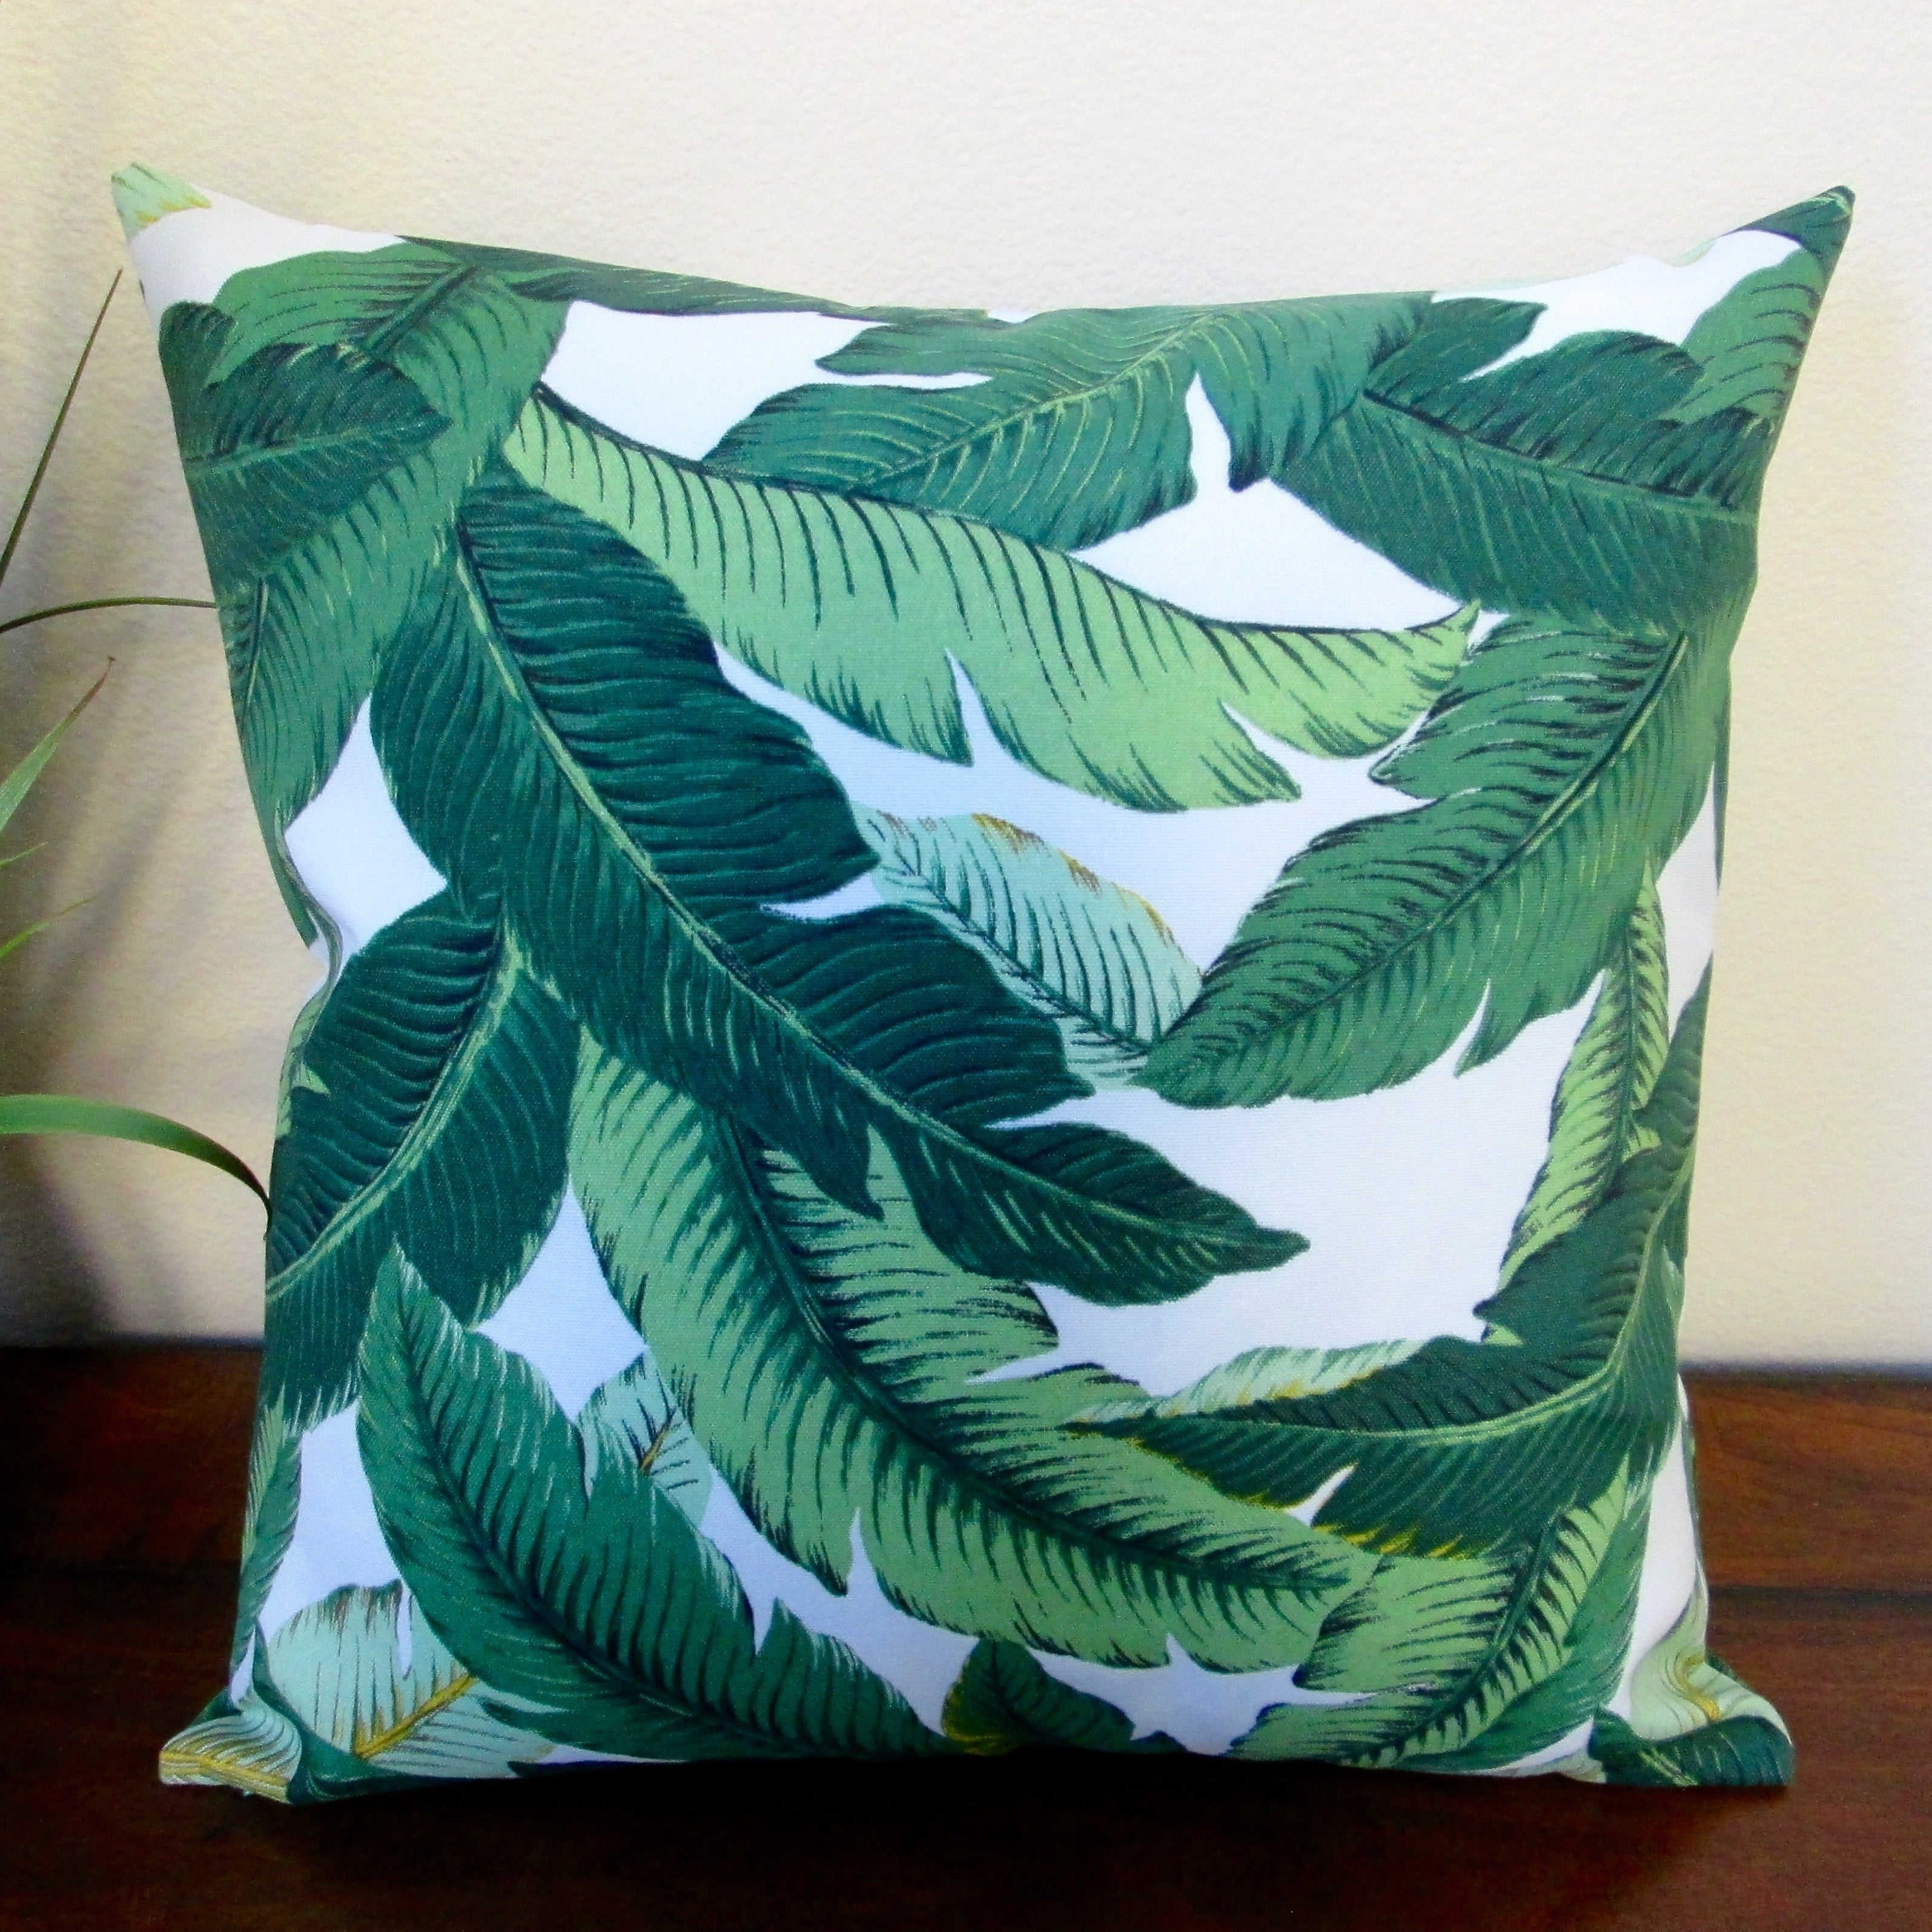 Patio//outdoor green palm leaf Throw Pillow Cover 18x18 End Of Summer Sale!!